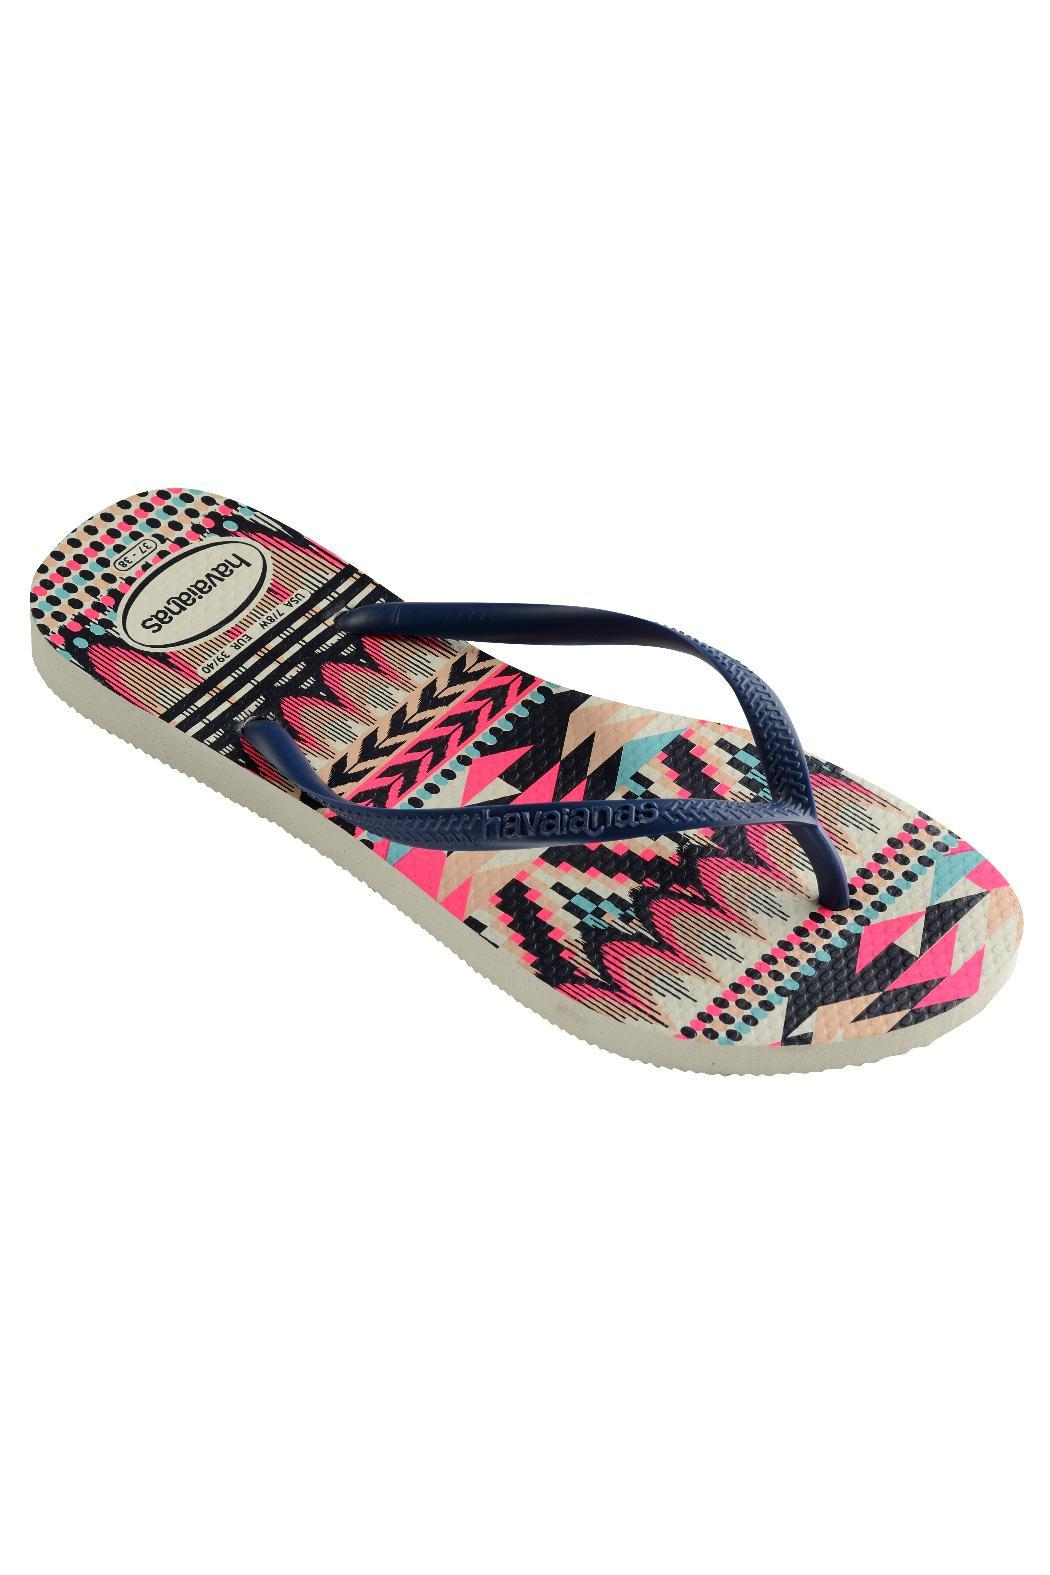 fbf6524be19c42 Havaianas Slim Tribal Flipflop from Kansas by Swim Quik — Shoptiques